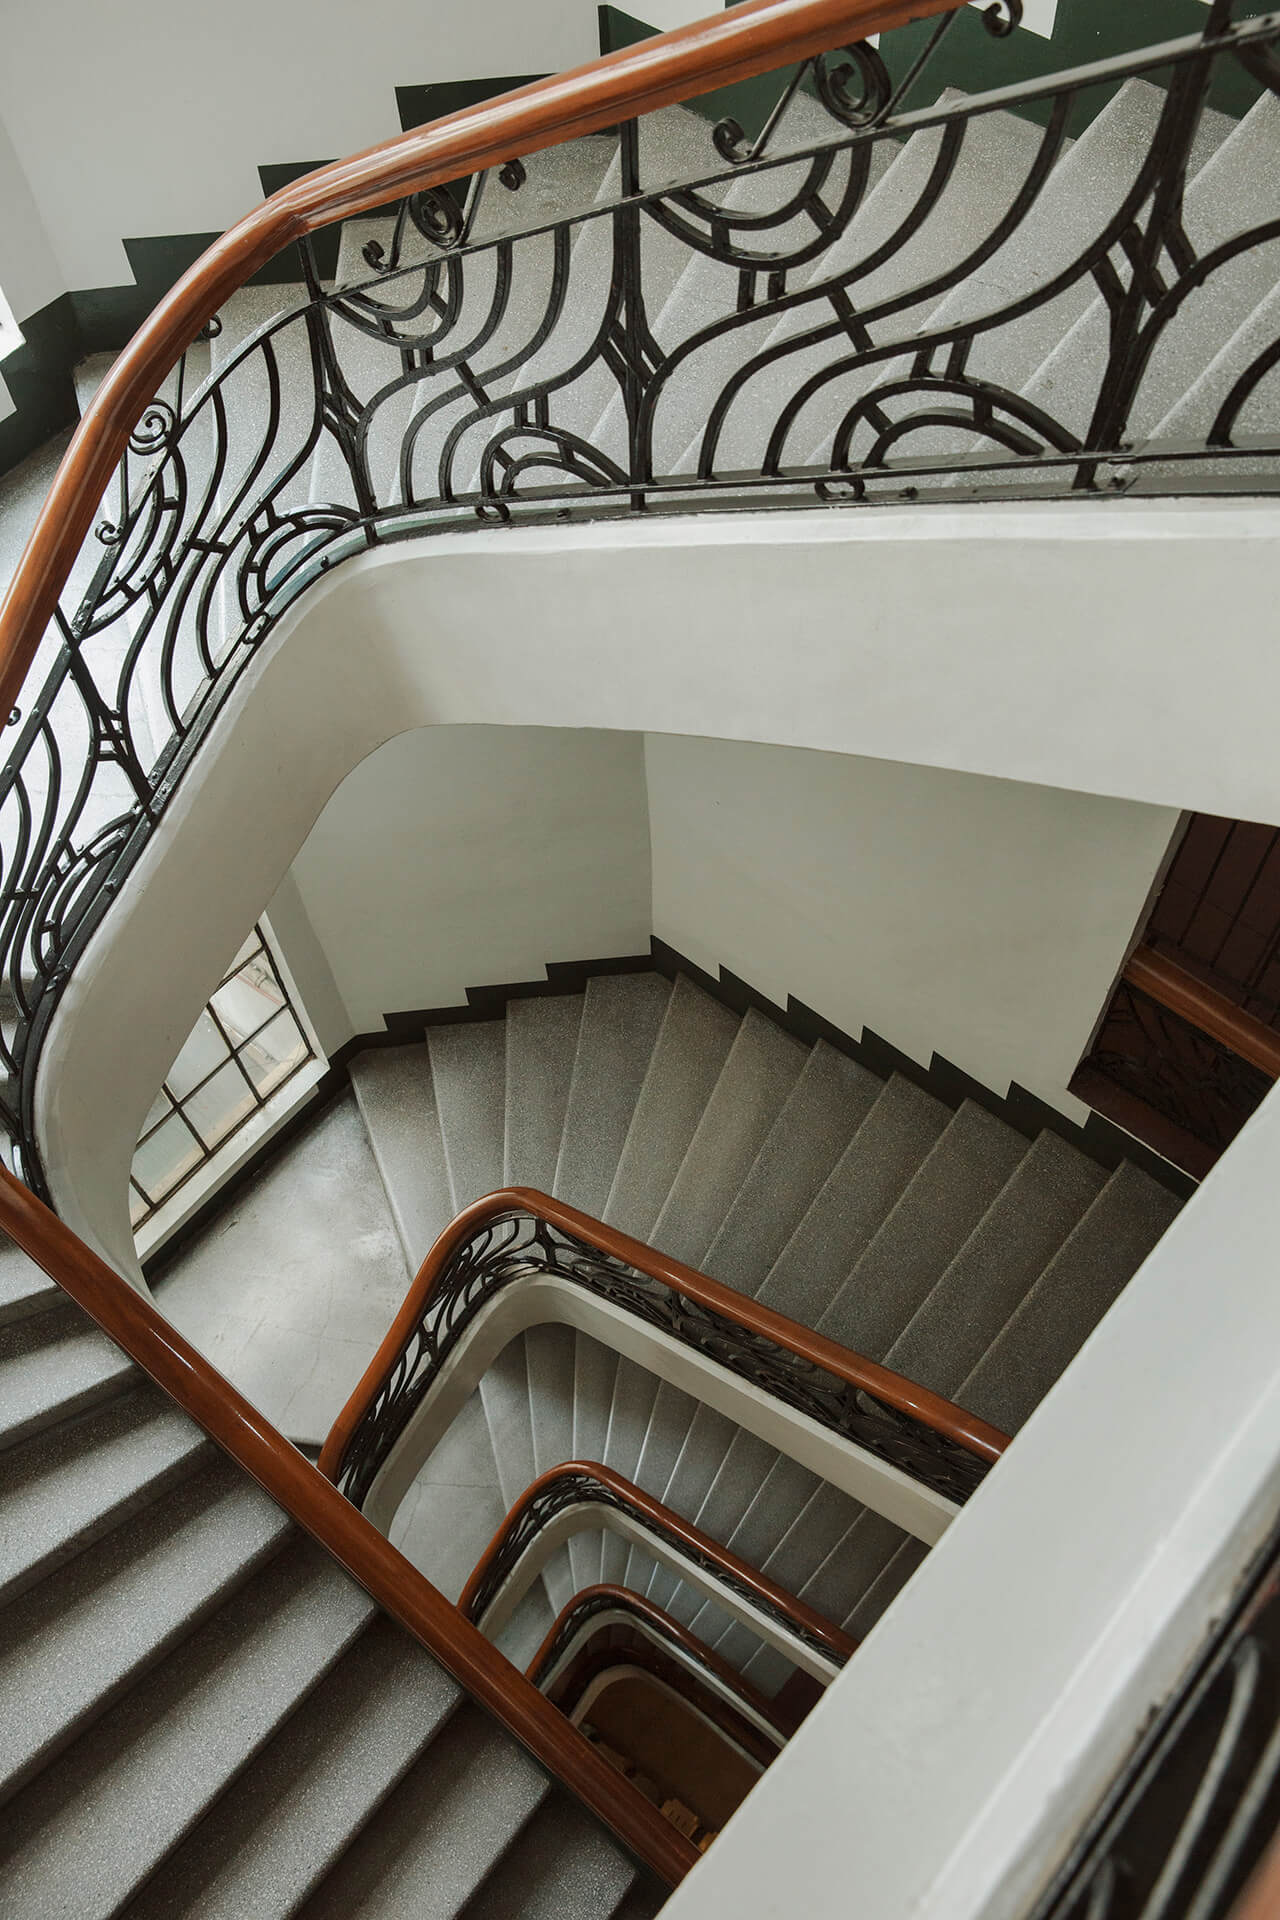 First United Building's iconic art deco staircase.